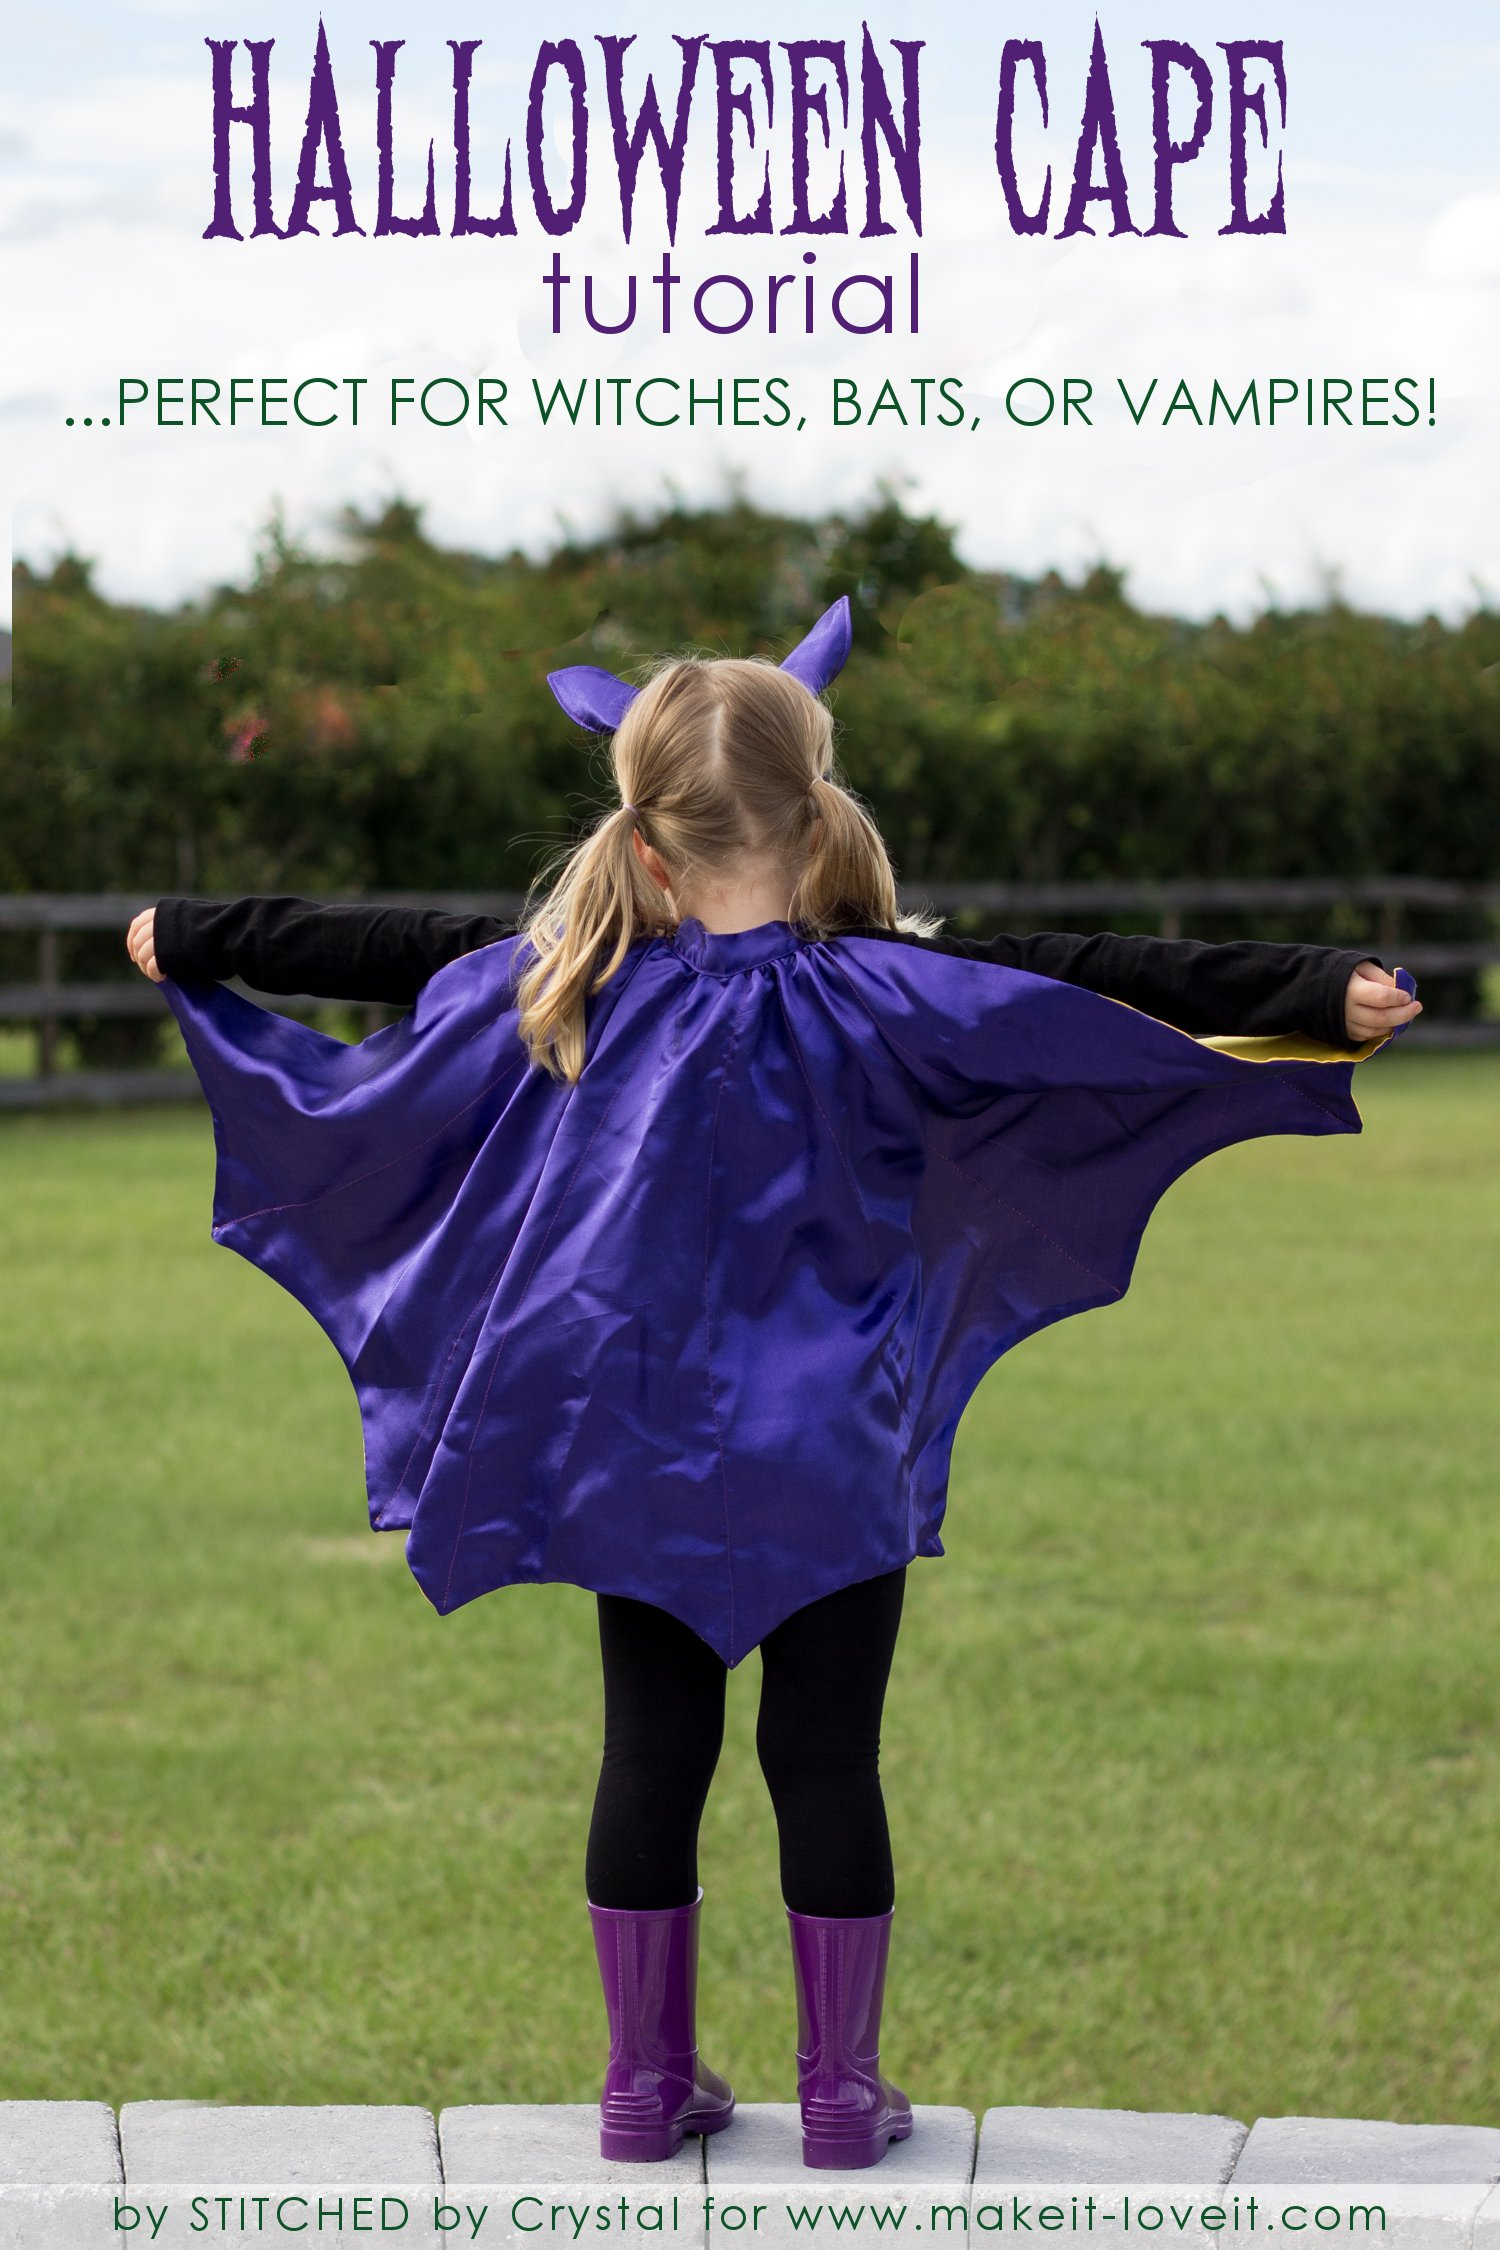 Sew A Reversible Halloween Cape….Perfect for Bats, Witches, and Vampires!